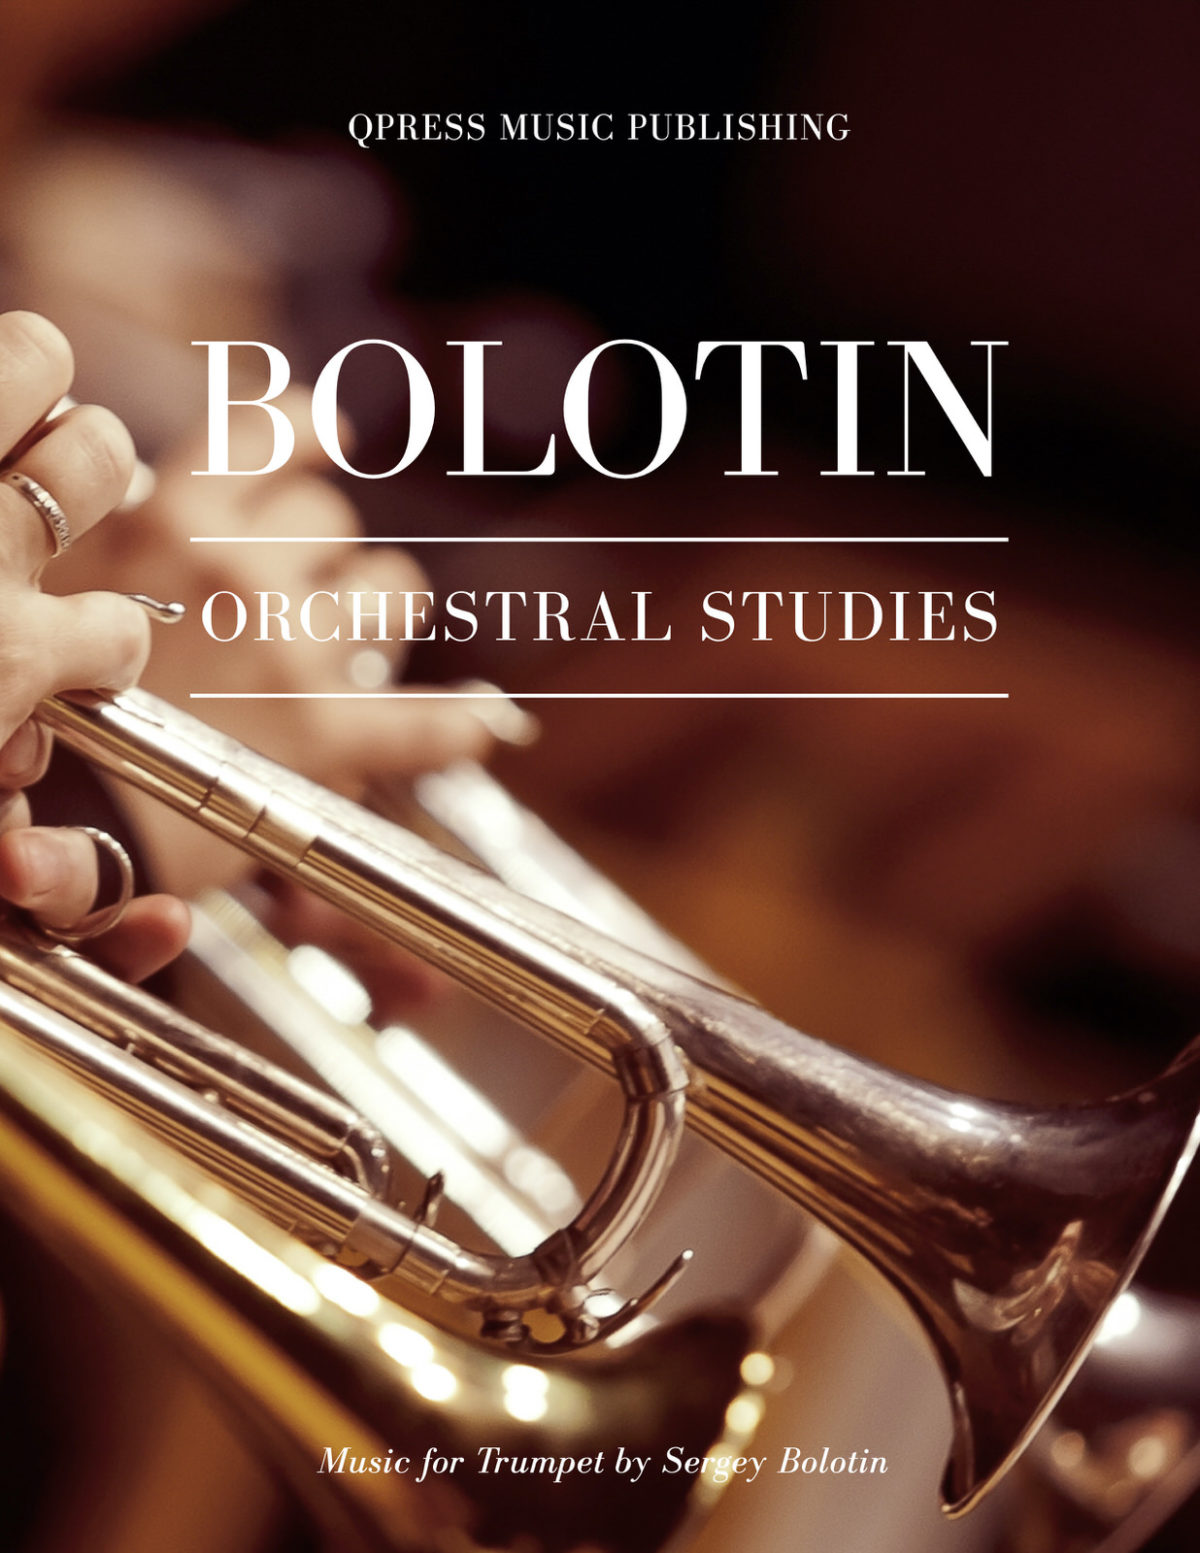 Bolotin, 24 Orchestral Studies for Trumpet